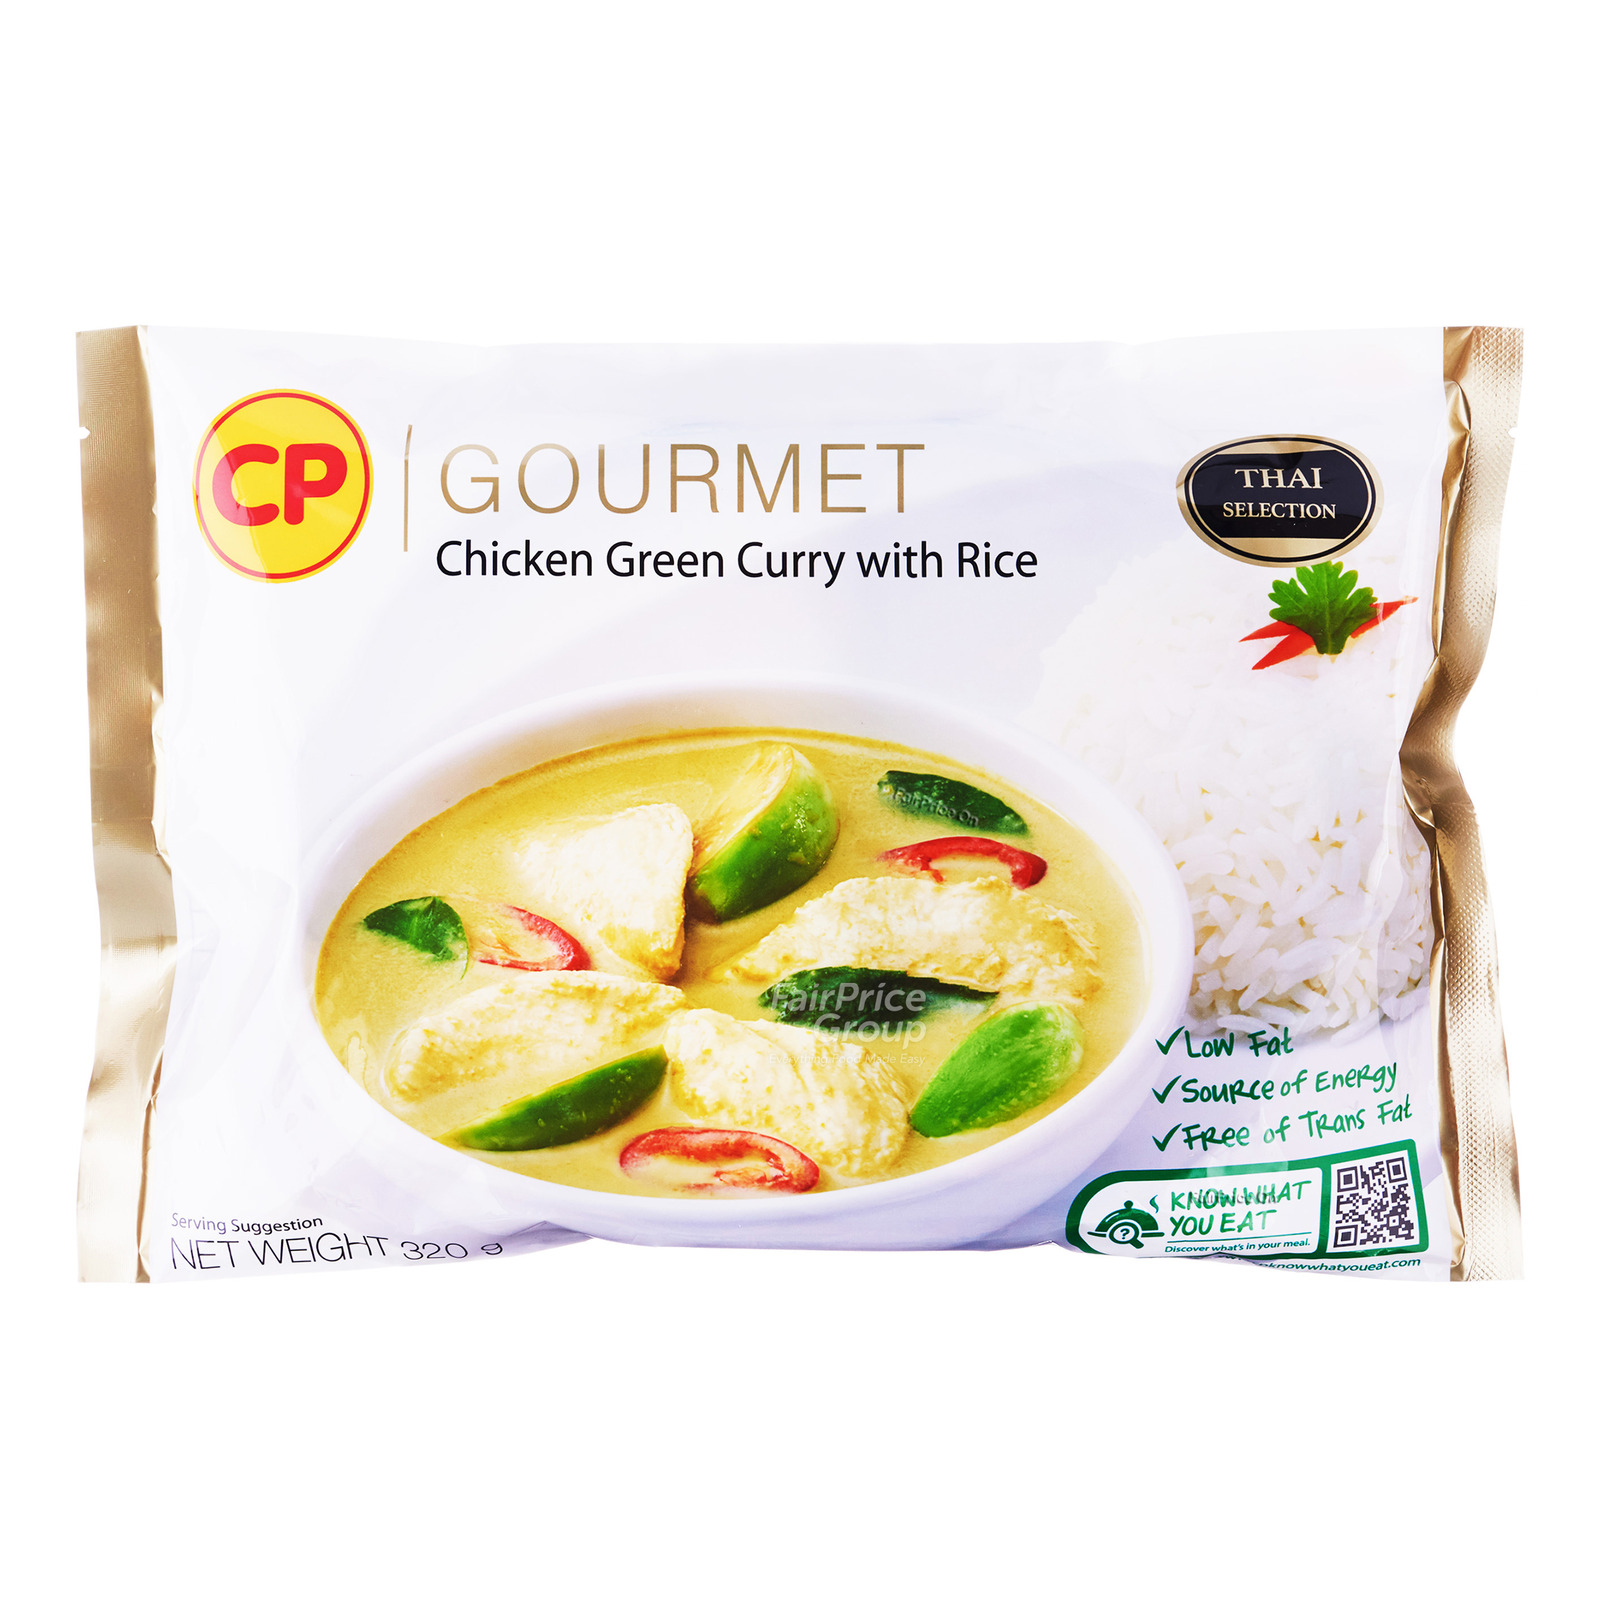 CP Gourmet Ready Meal - Chicken Green Curry with Rice